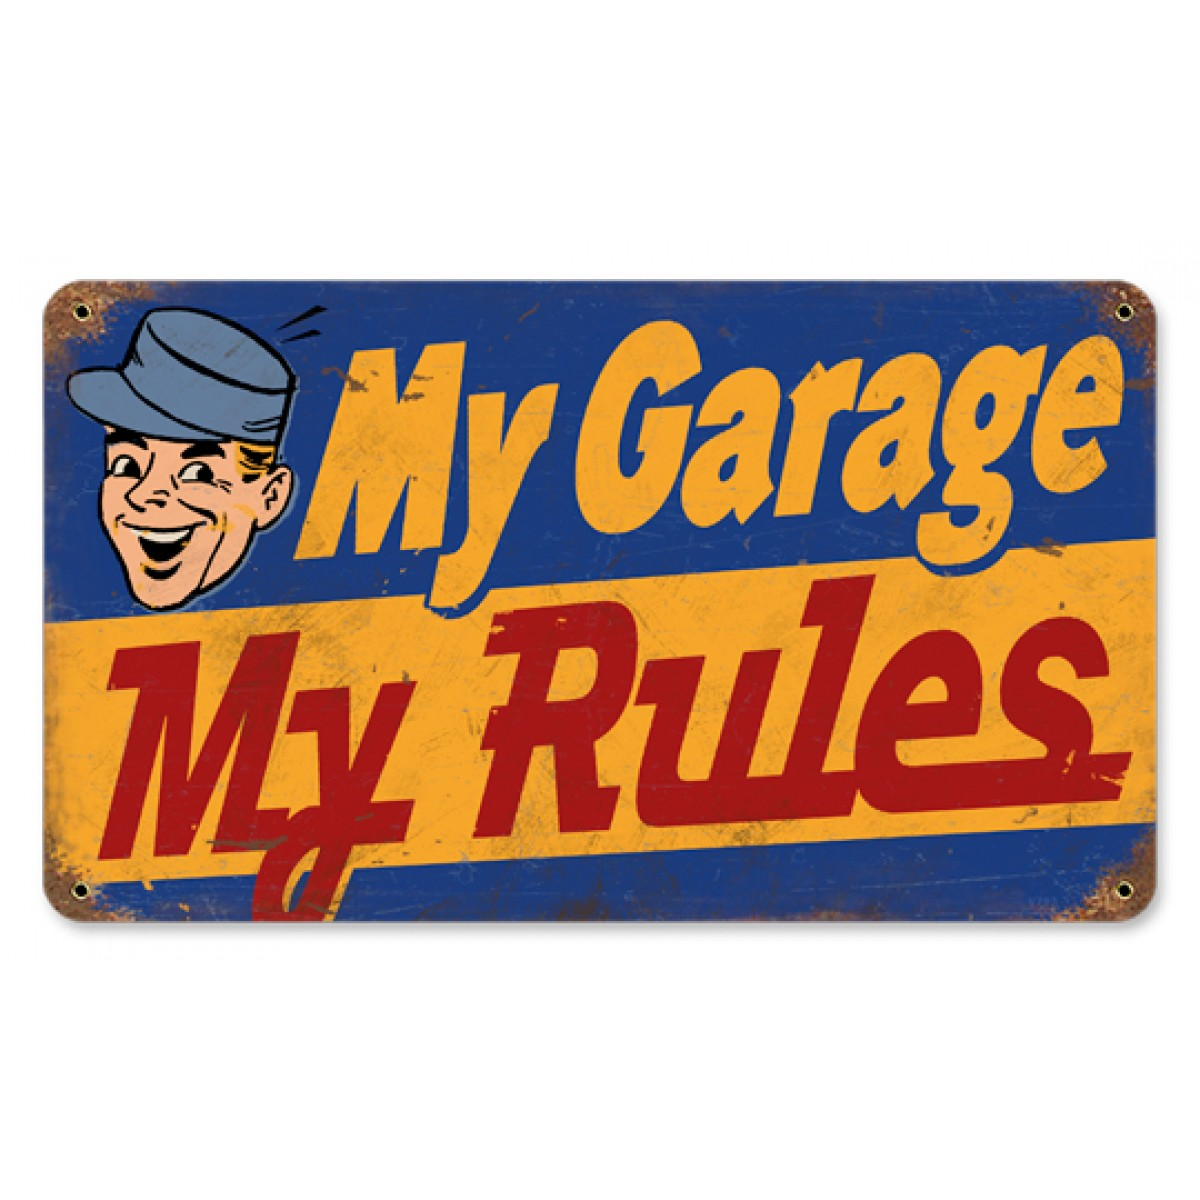 Hossrodsm  My Garage My Rules Metal Sign  Hot Rod. Dreaded Excel Business Card Template. Order Form Template Microsoft Pics. Paper Picture Frames Templates. Weekly Meal Planner Chart Template. Objective Example For Resume For Students Template. Employment Verification Template Free. Sample Of Sales Proposal Template. Simple Mortgage Loan Calculator Template